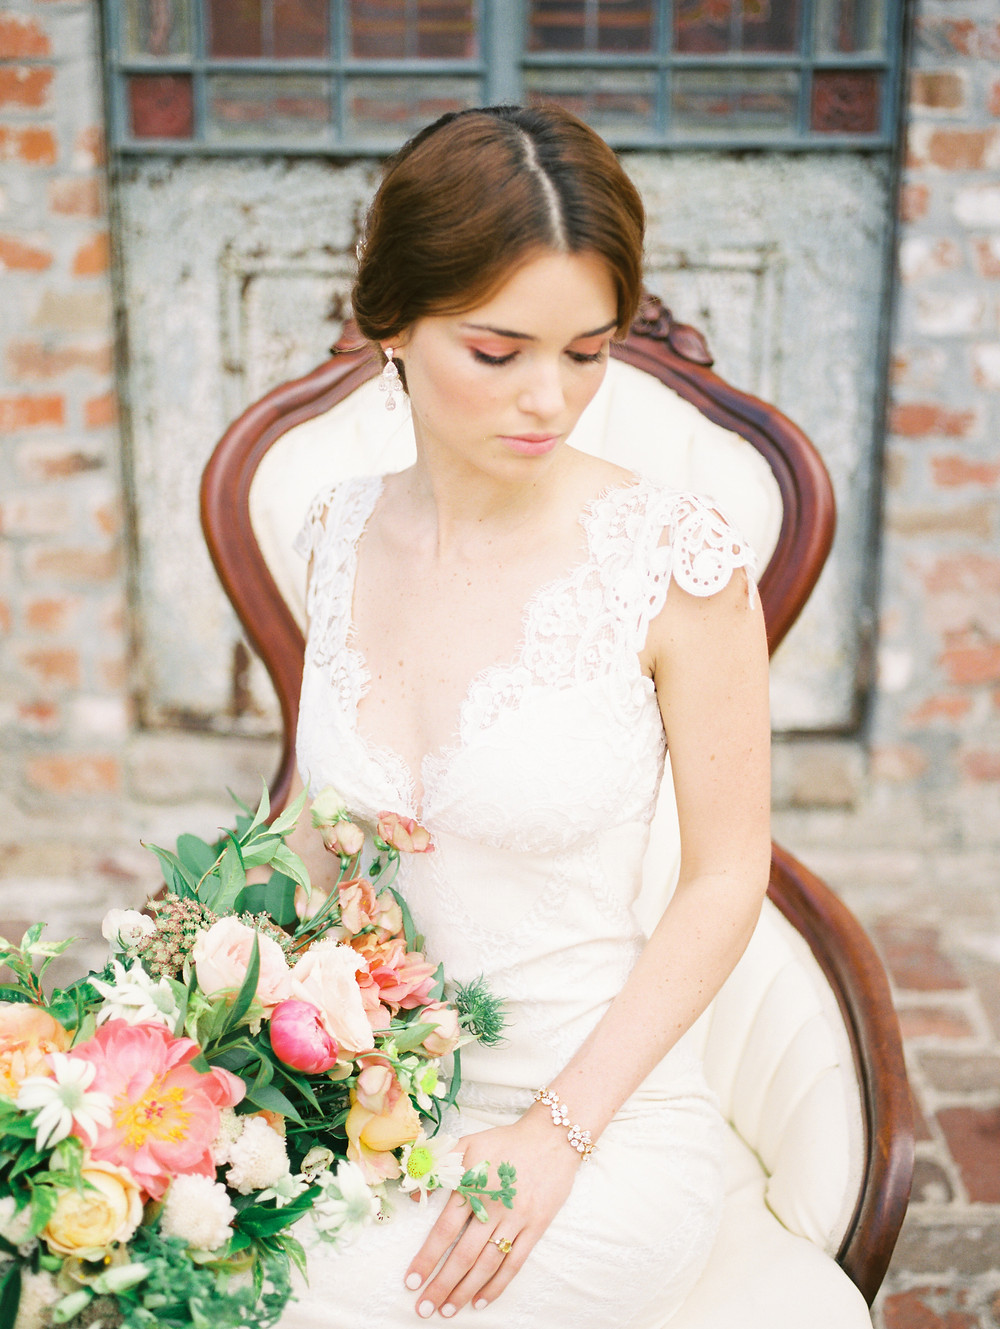 Bridal Shoot with Sophie Kaye Photography, Sapphire Events, The Petaler Co. and Lovegood Wedding & Event Rentals at Race & Religious | Vintage Furniture for New Orleans Events and Weddings